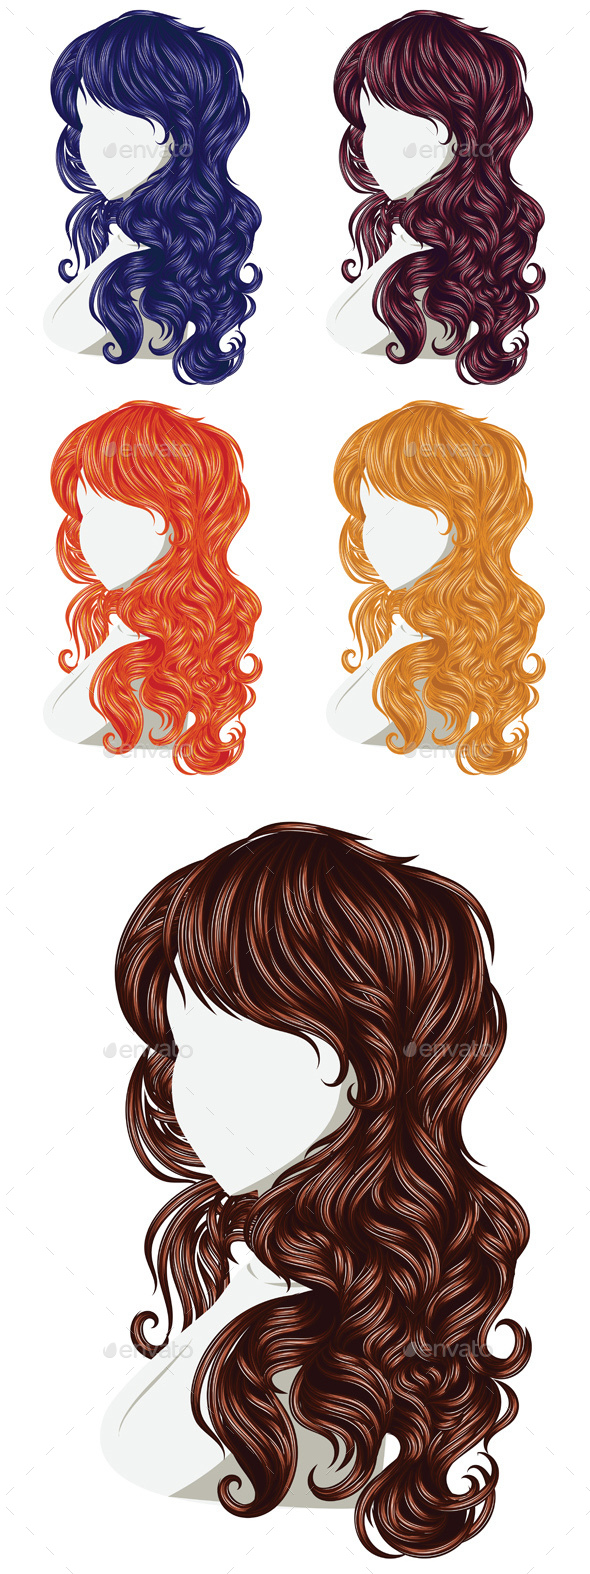 Curly Hair Style - Miscellaneous Vectors